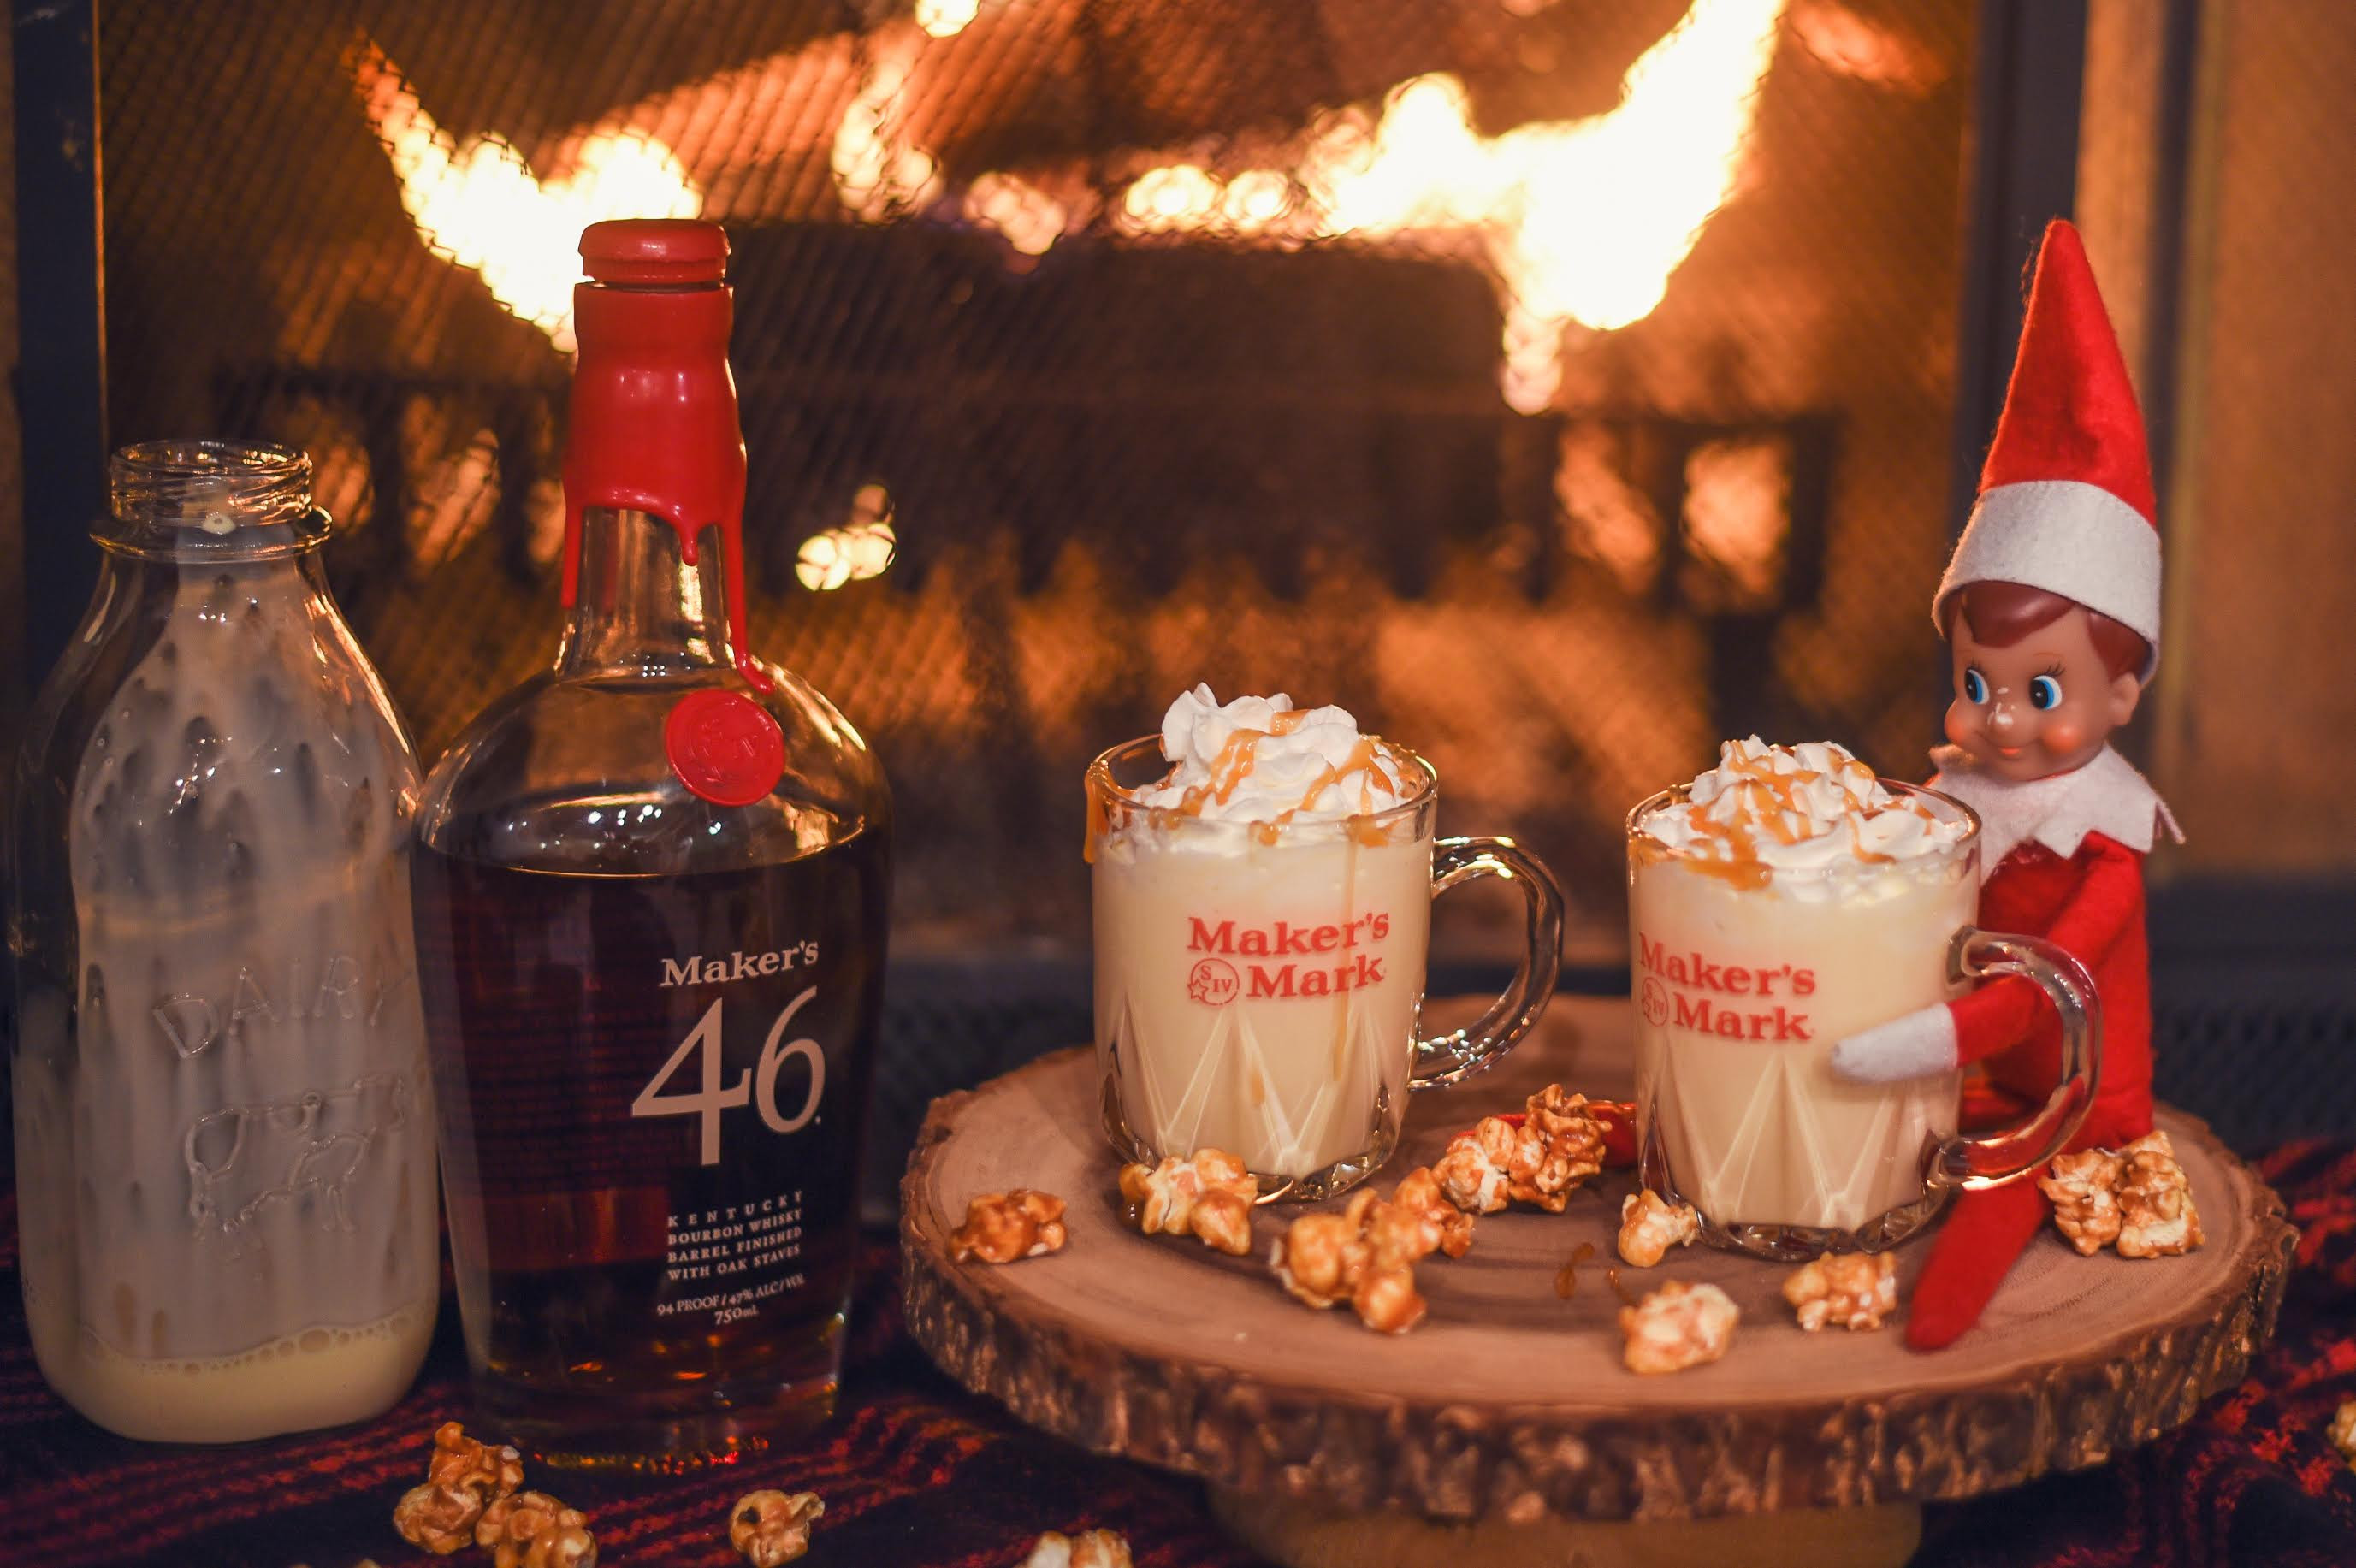 Whiskey Christmas Drinks  Top 10 Maker s Mark Whiskey Drinks with Recipes